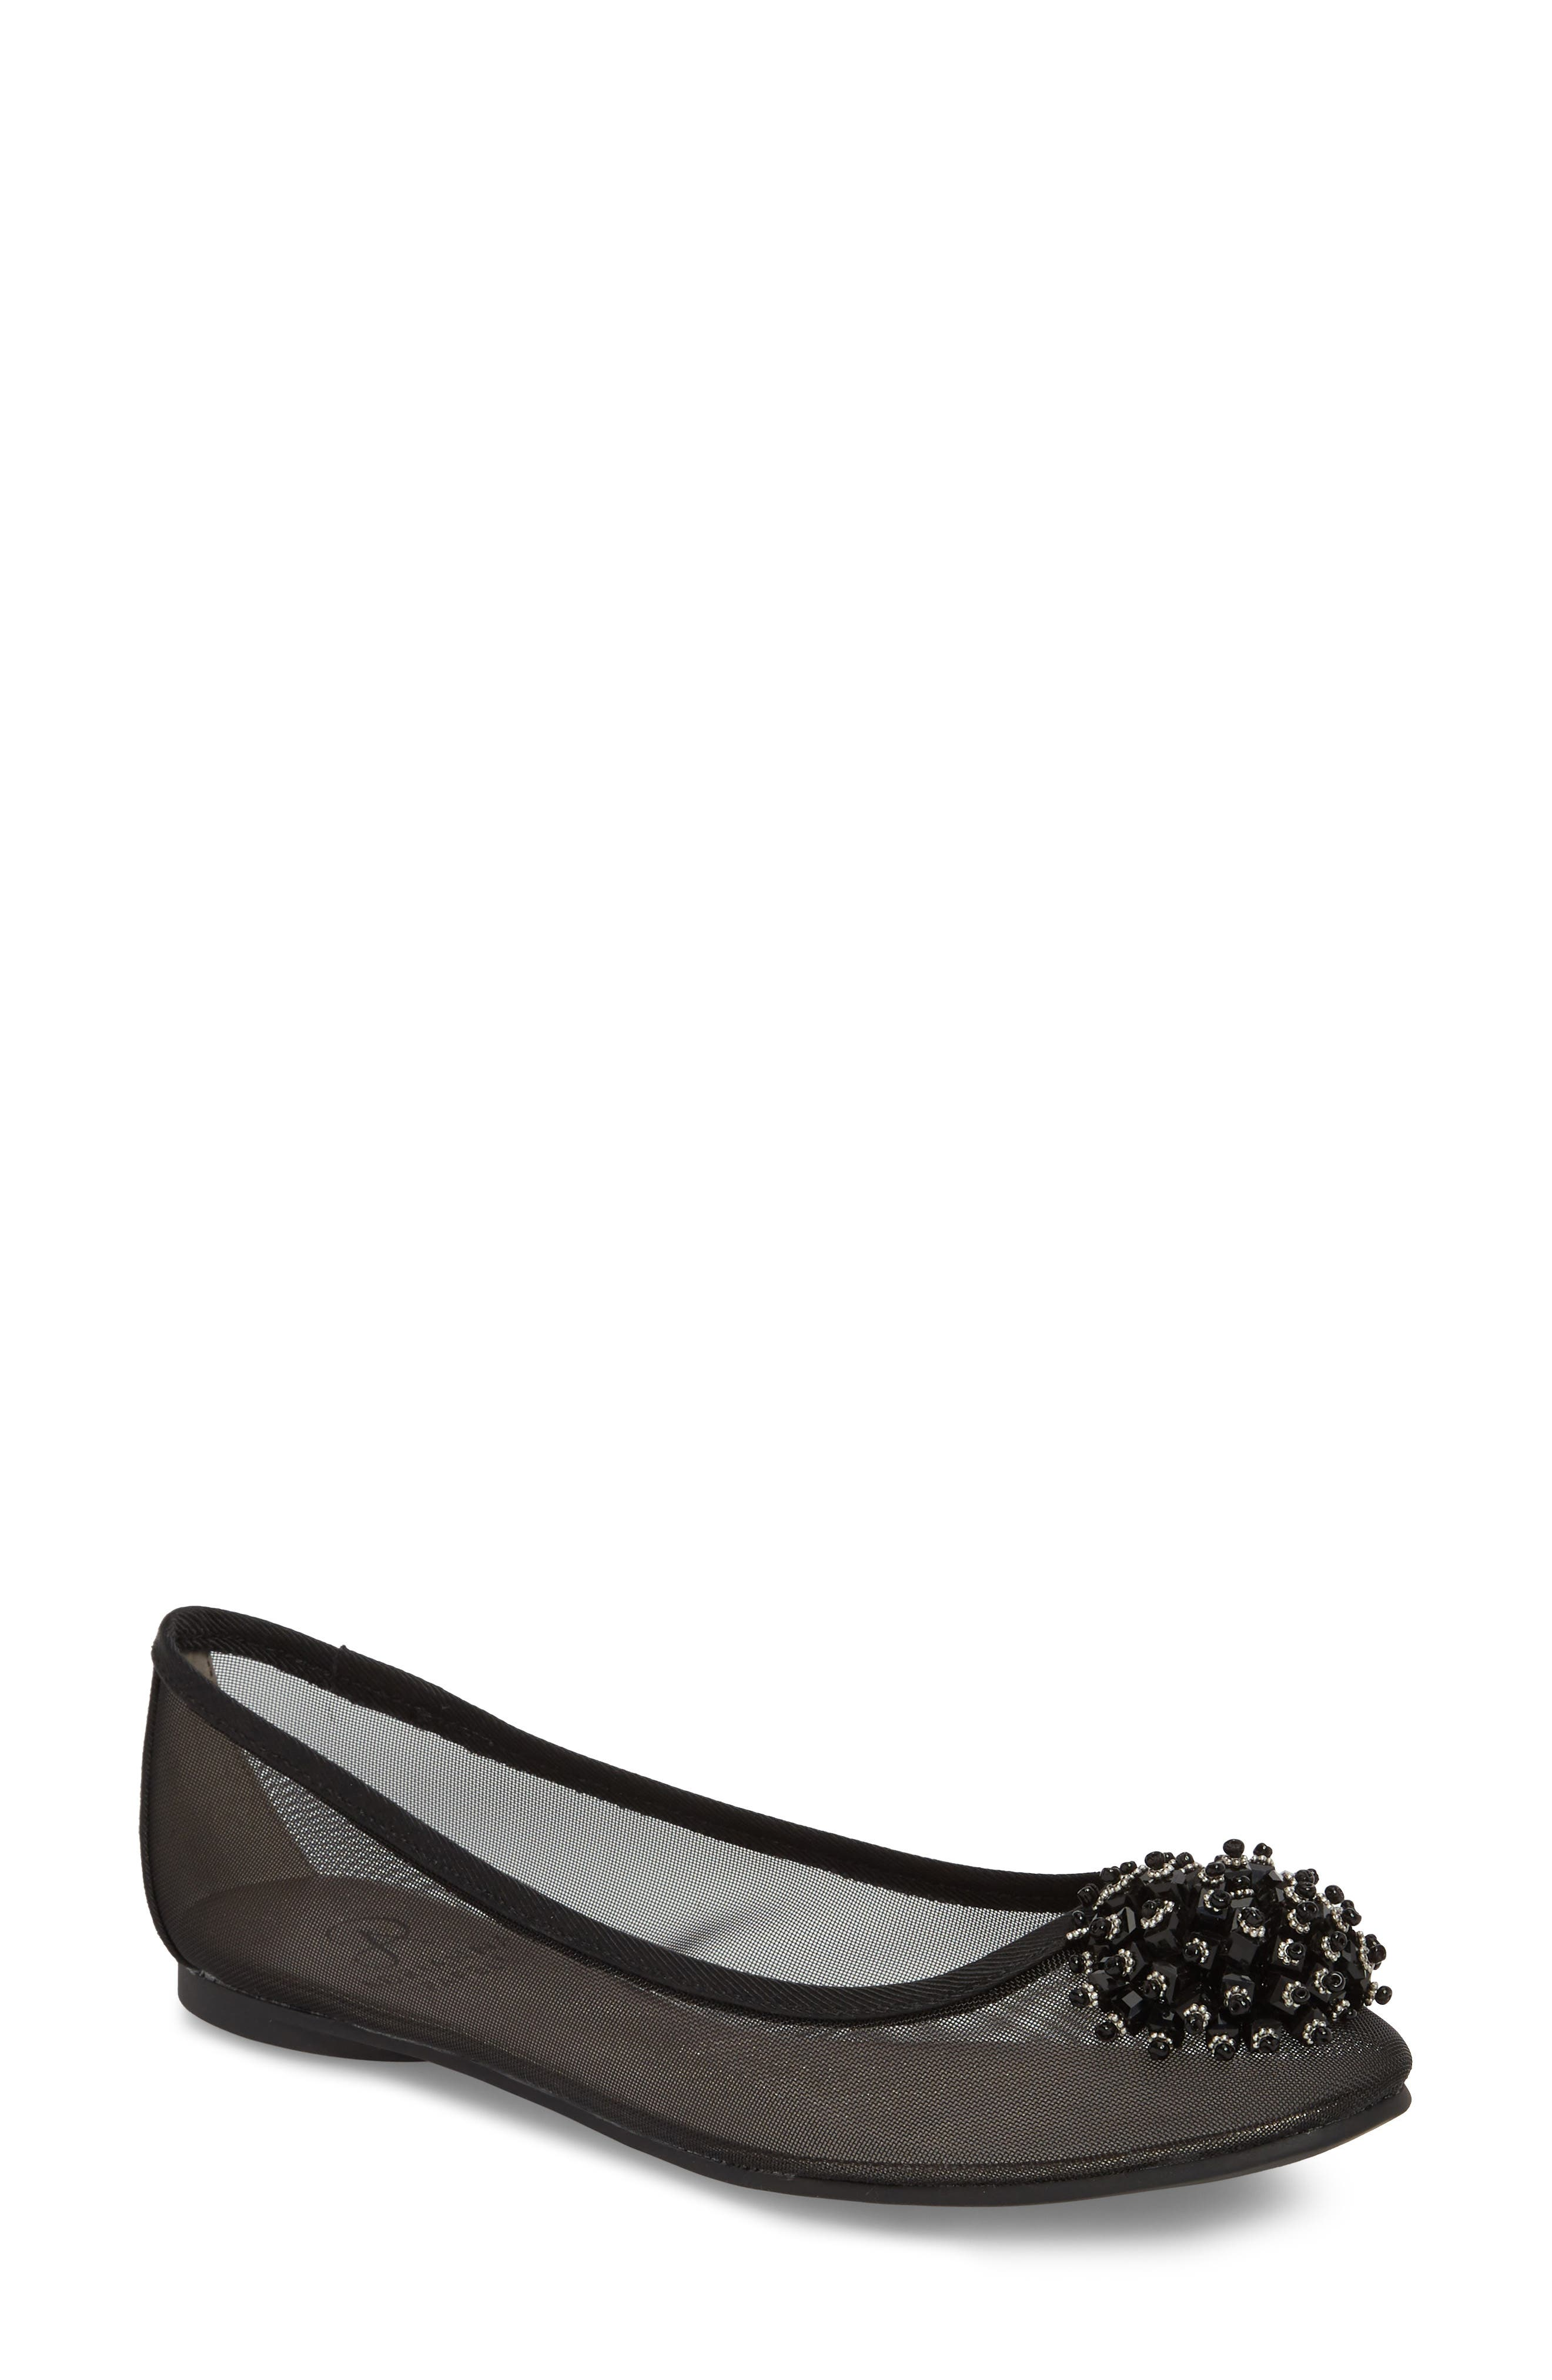 ADRIANNA PAPELL Stevie Embellished Flat, Main, color, 001